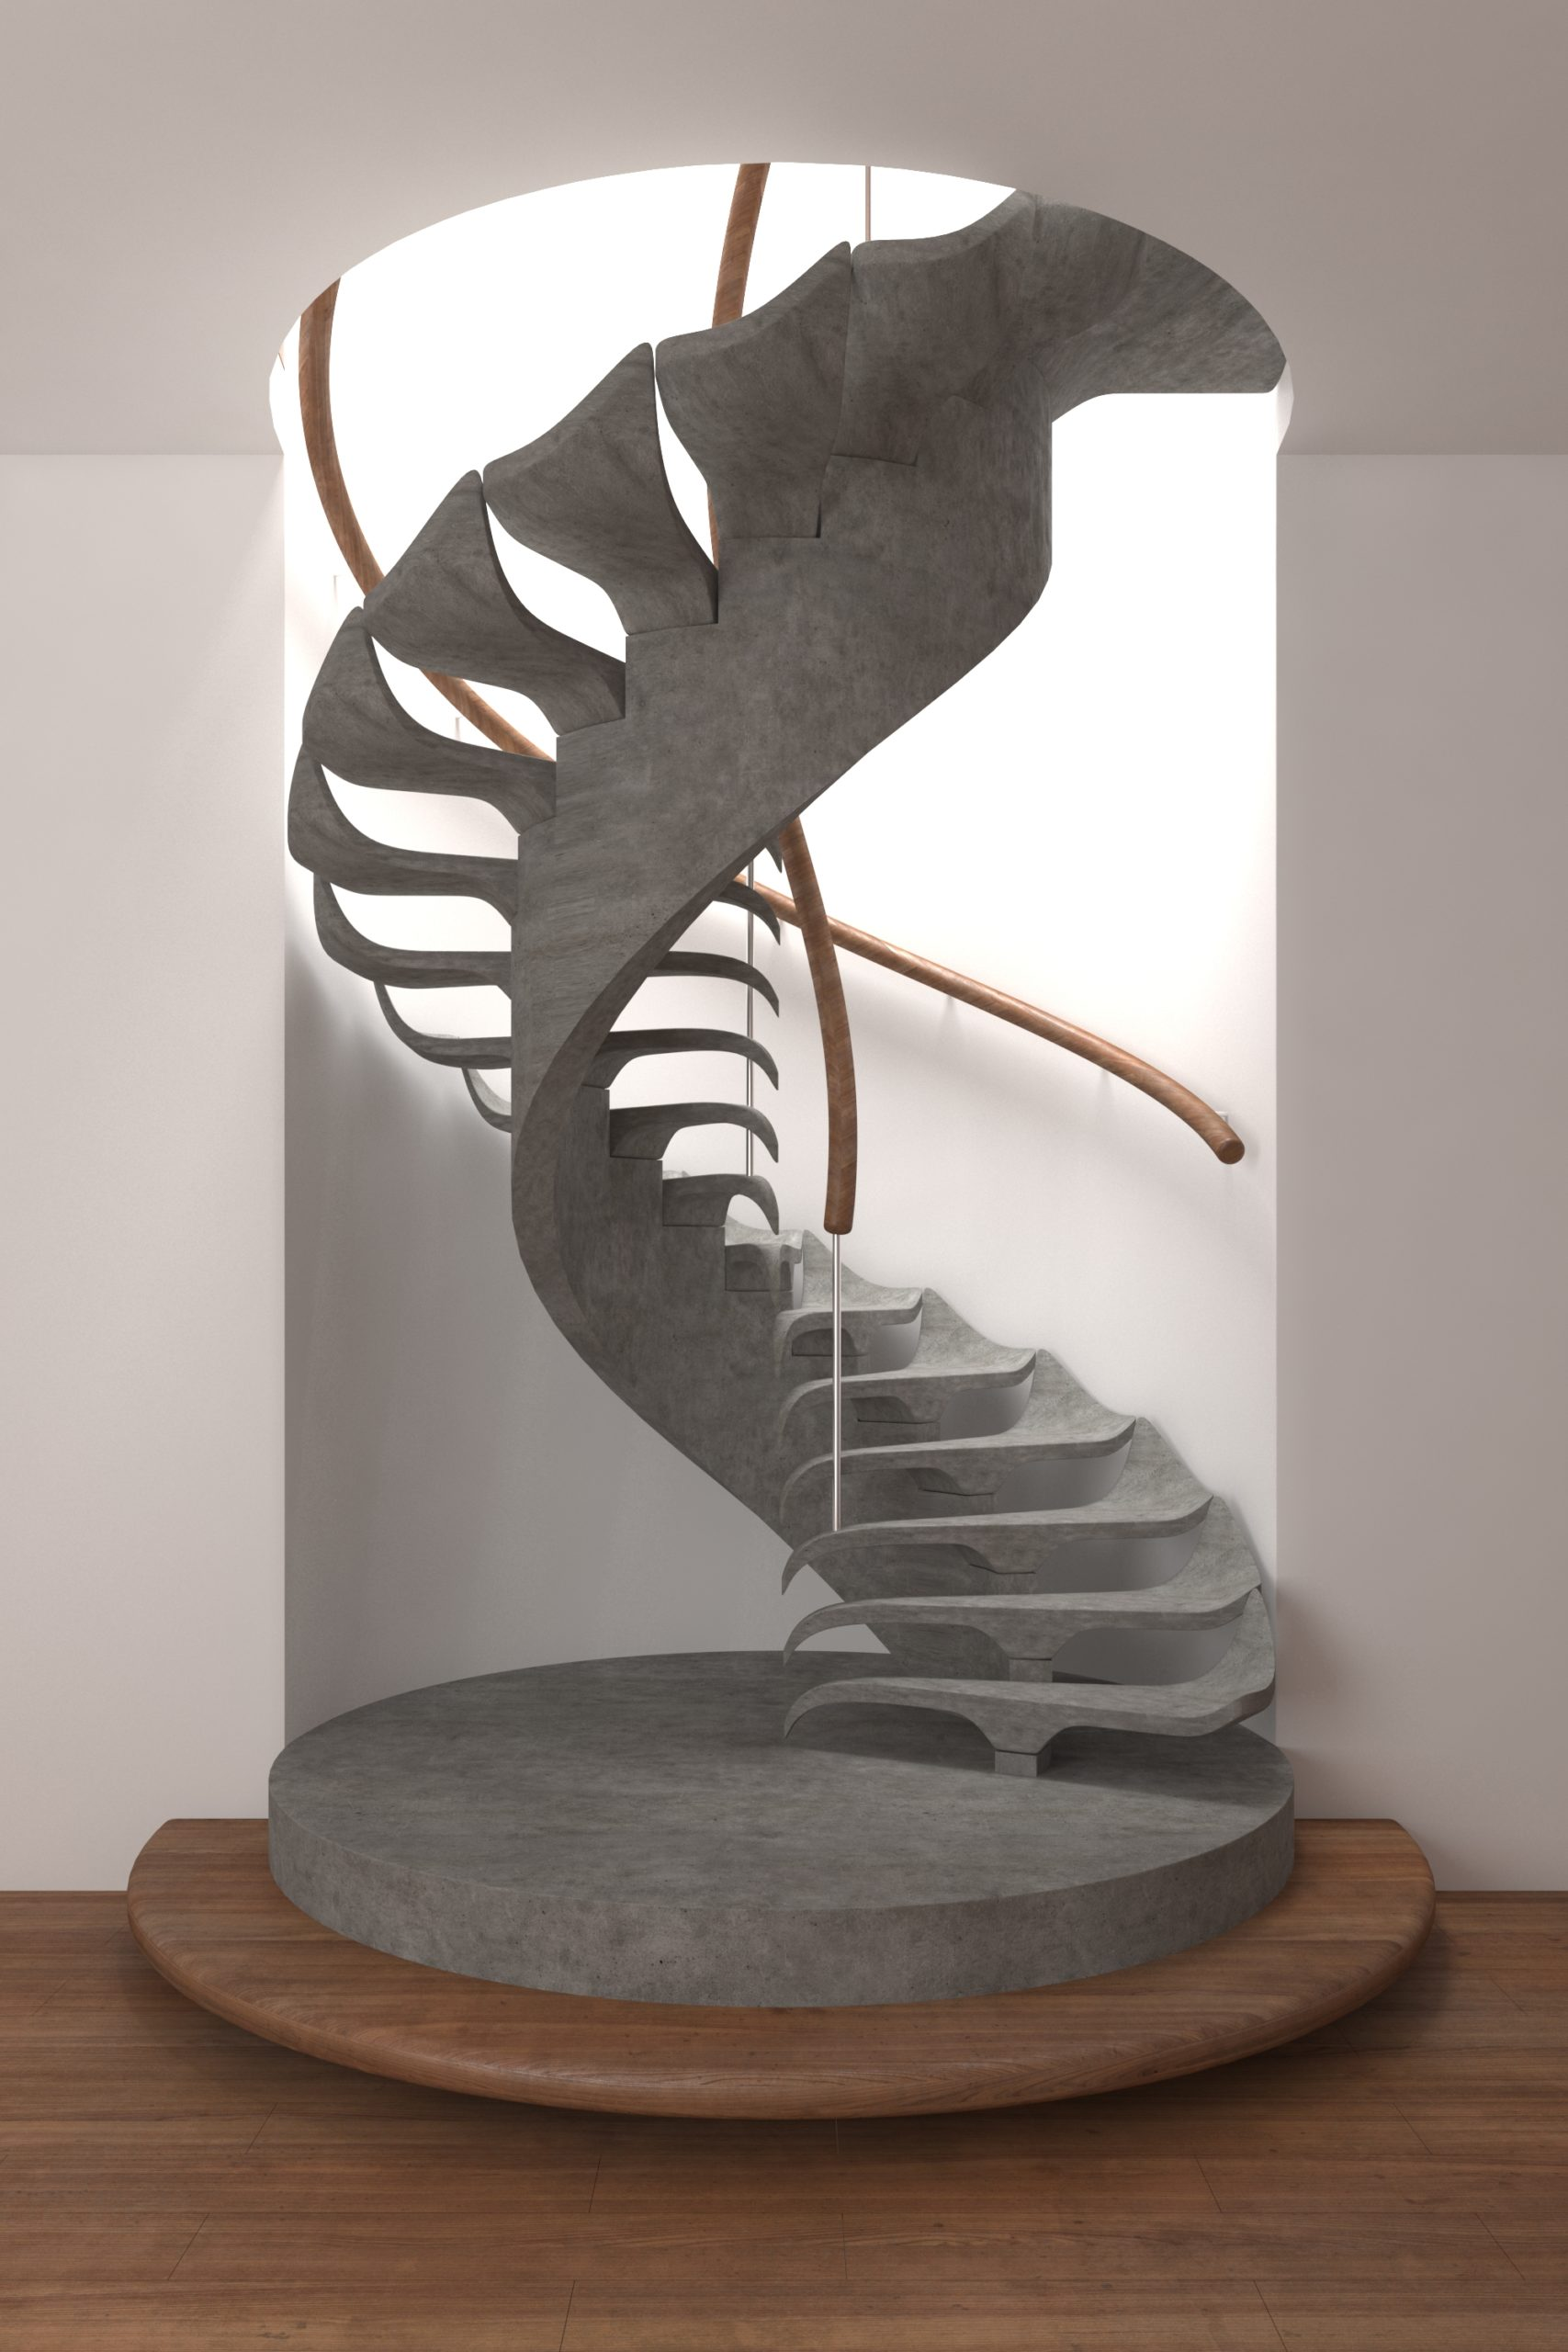 projet fossil stairs design awards 2020